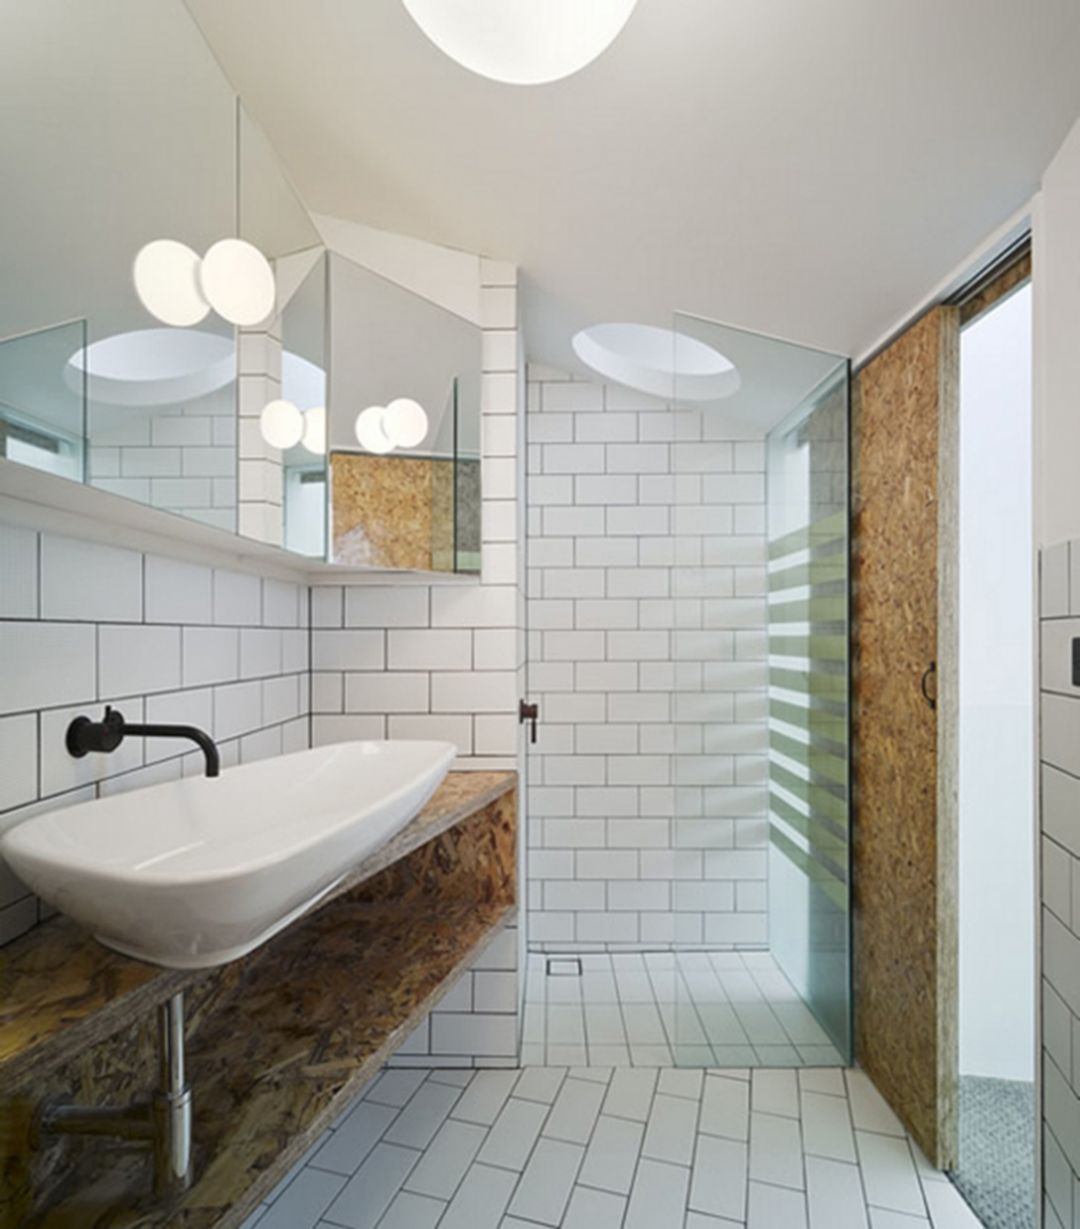 20+ Best Bathroom Design Ideas for Small Apartment On A Budget ...